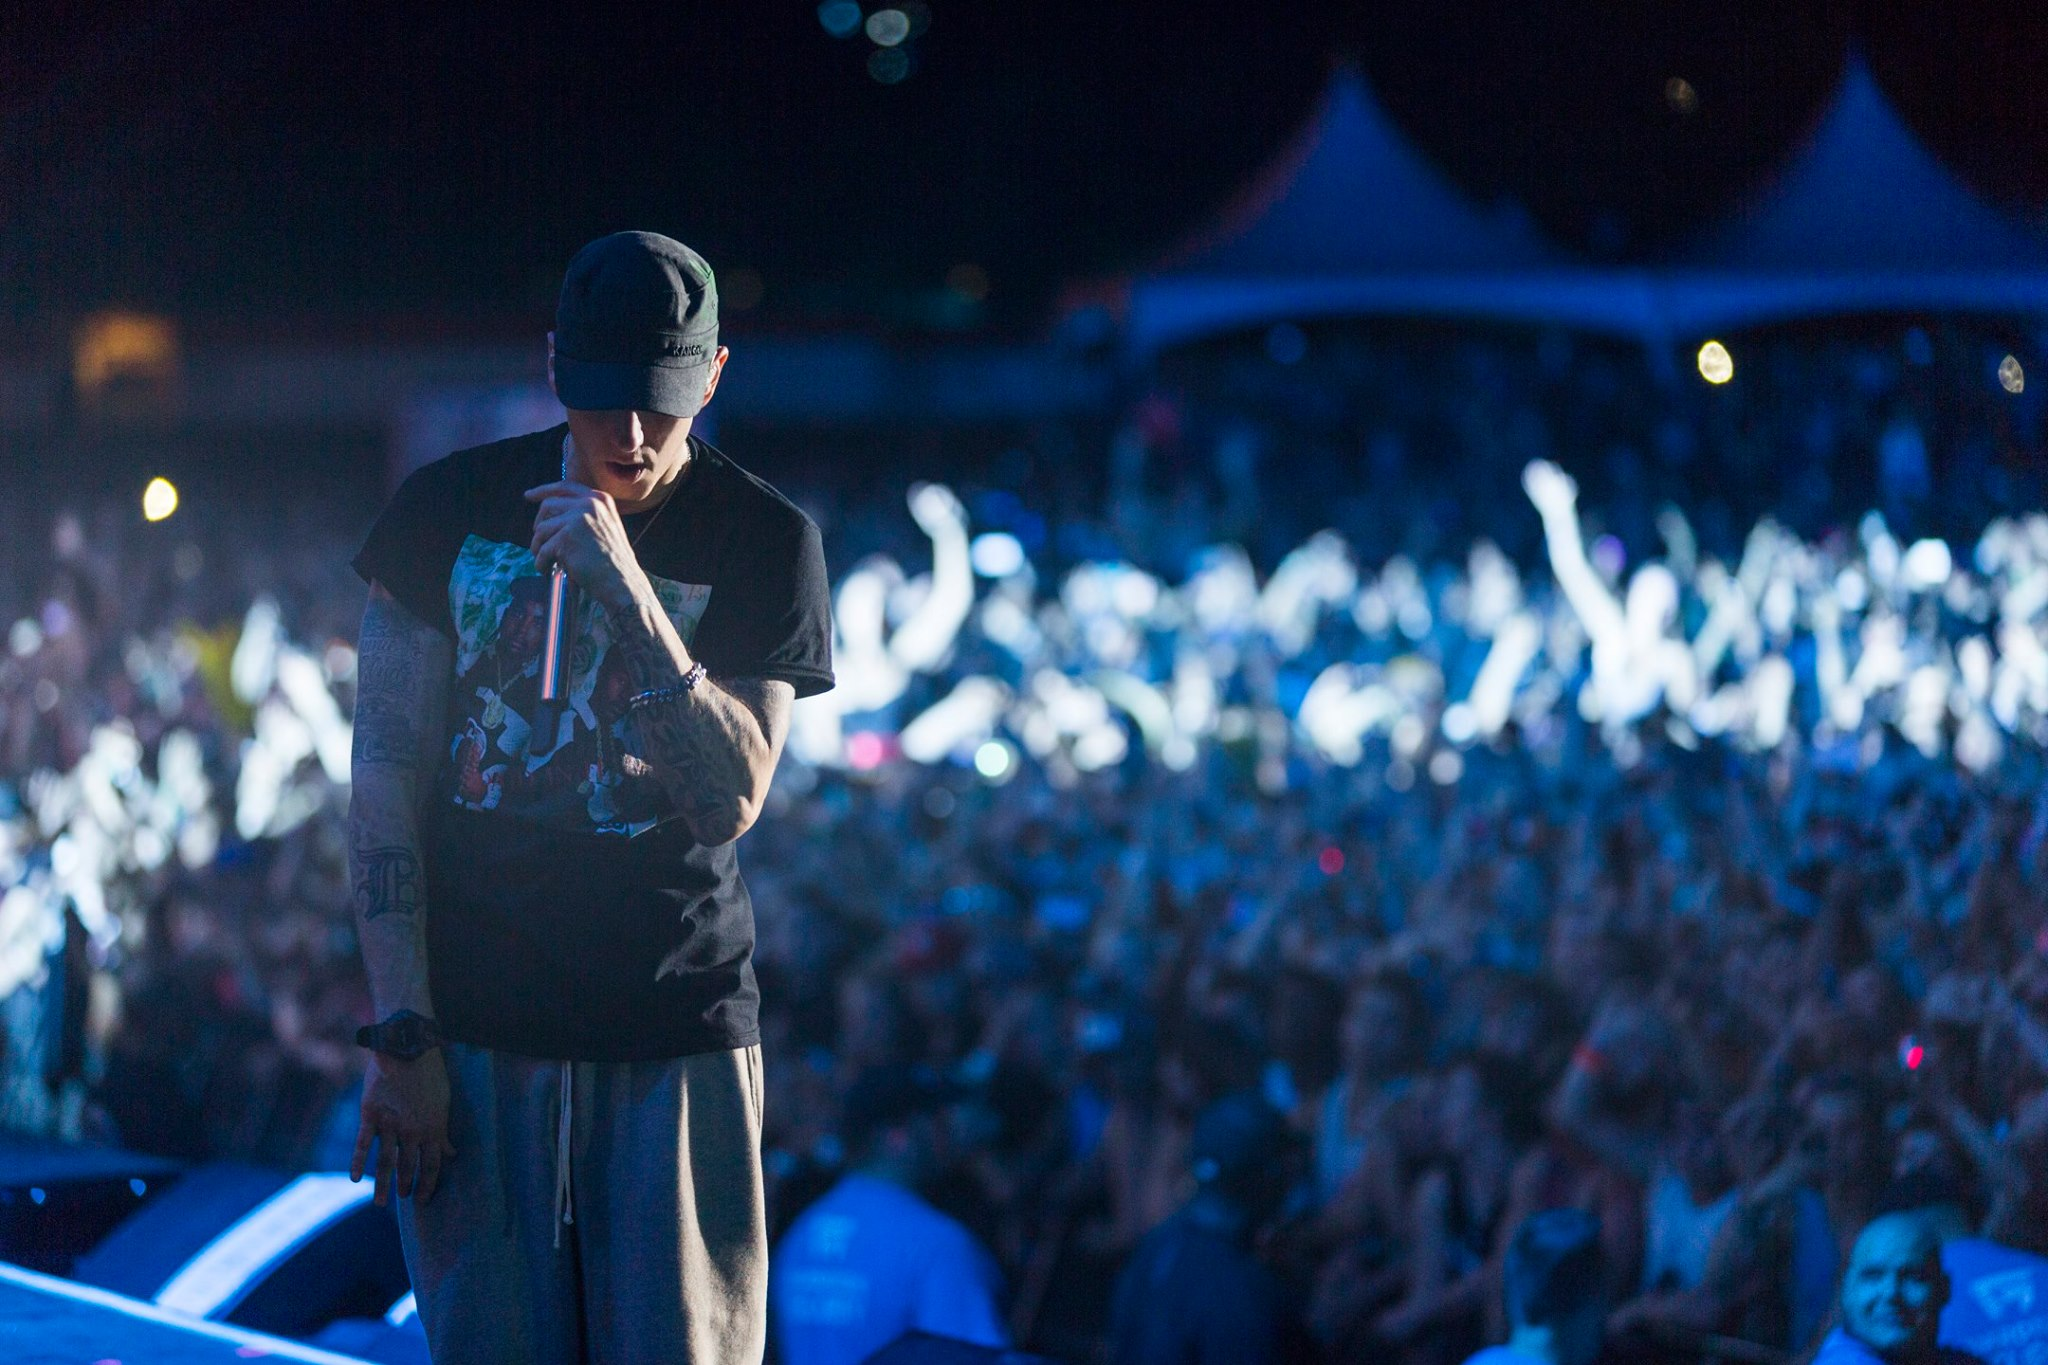 Eminem Squamish 2014 Photo by Jeremy Deputat